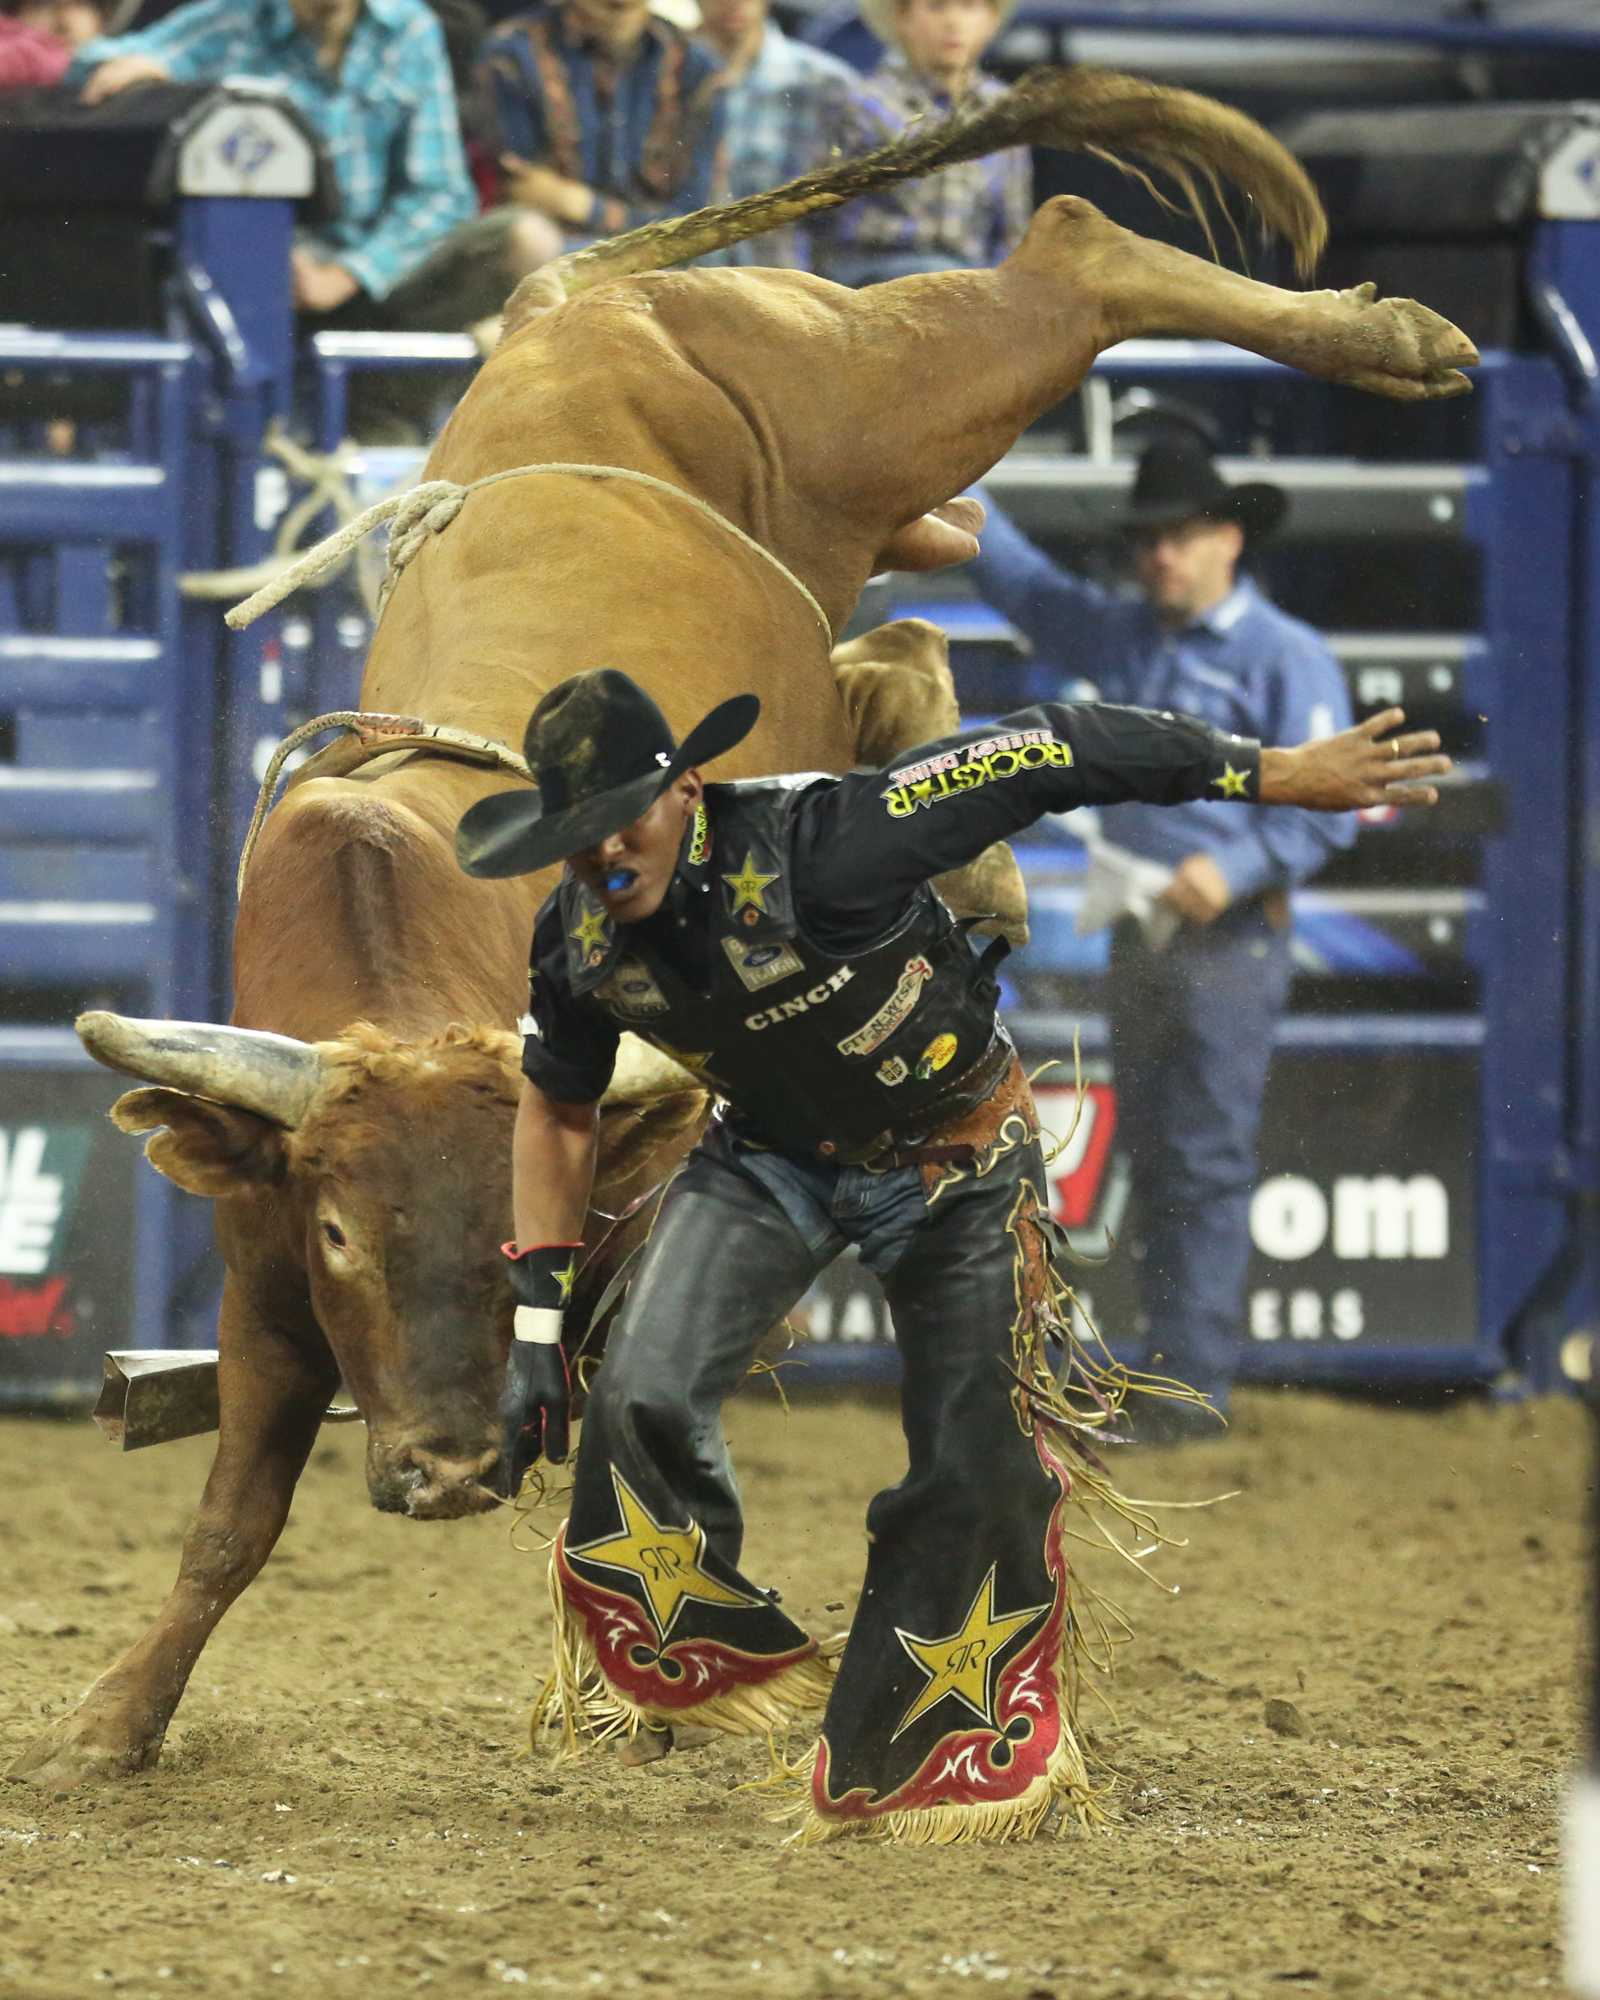 After getting off Slingin It Valdiron de Oliveira looks for safety as he tries to avoid the bull.